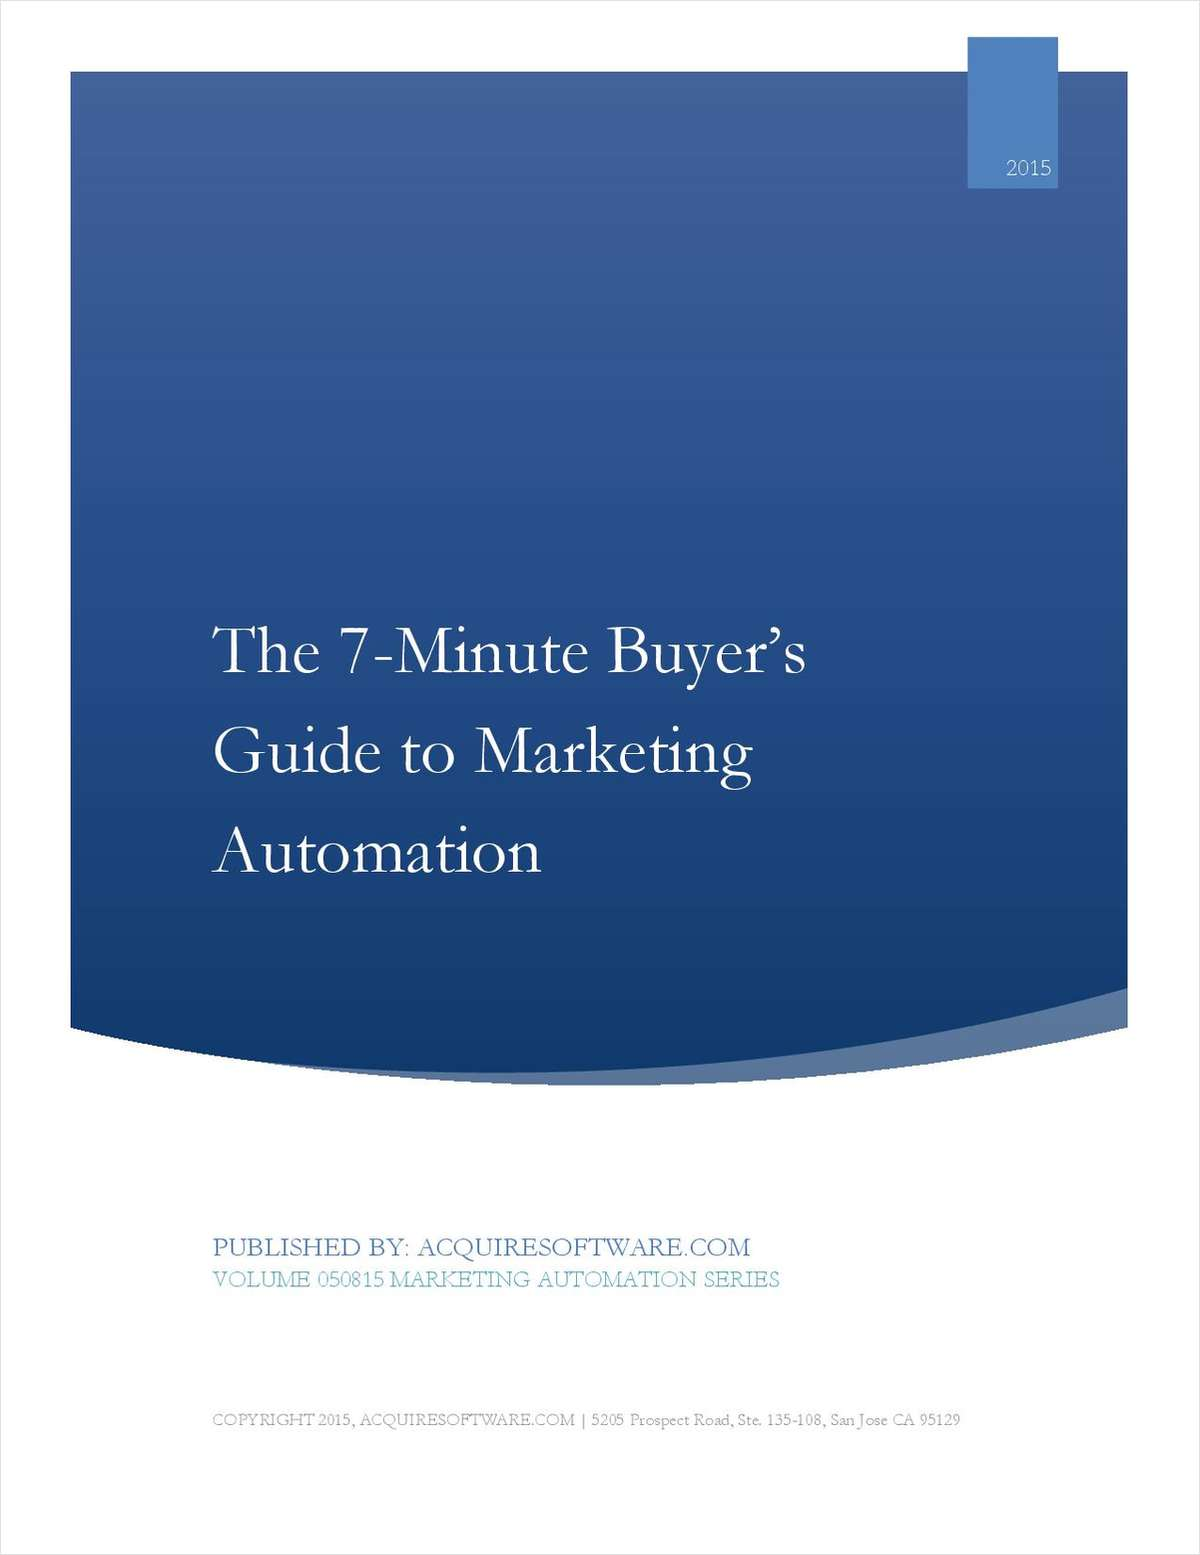 7-Minute Buyer's Guide: Selecting the Right Marketing Automation Platform for Your Organization